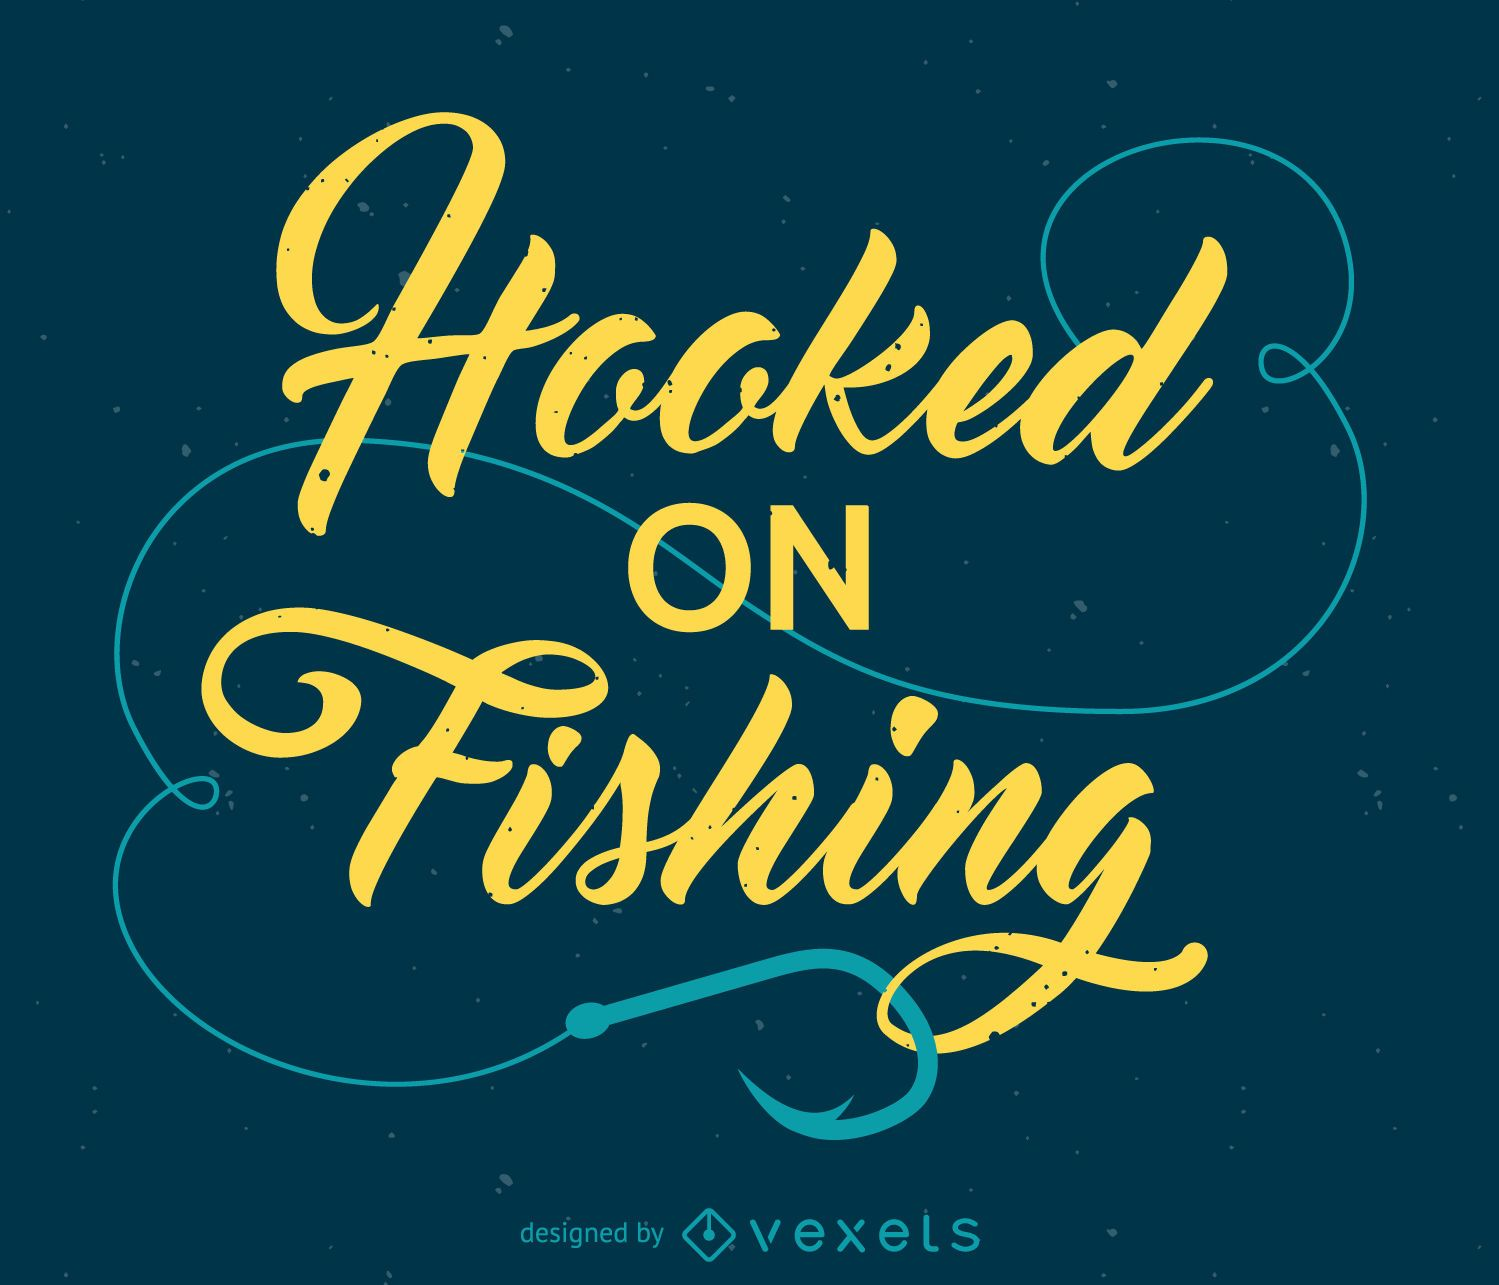 Hooked on fishing design vector download for Hooked on fishing